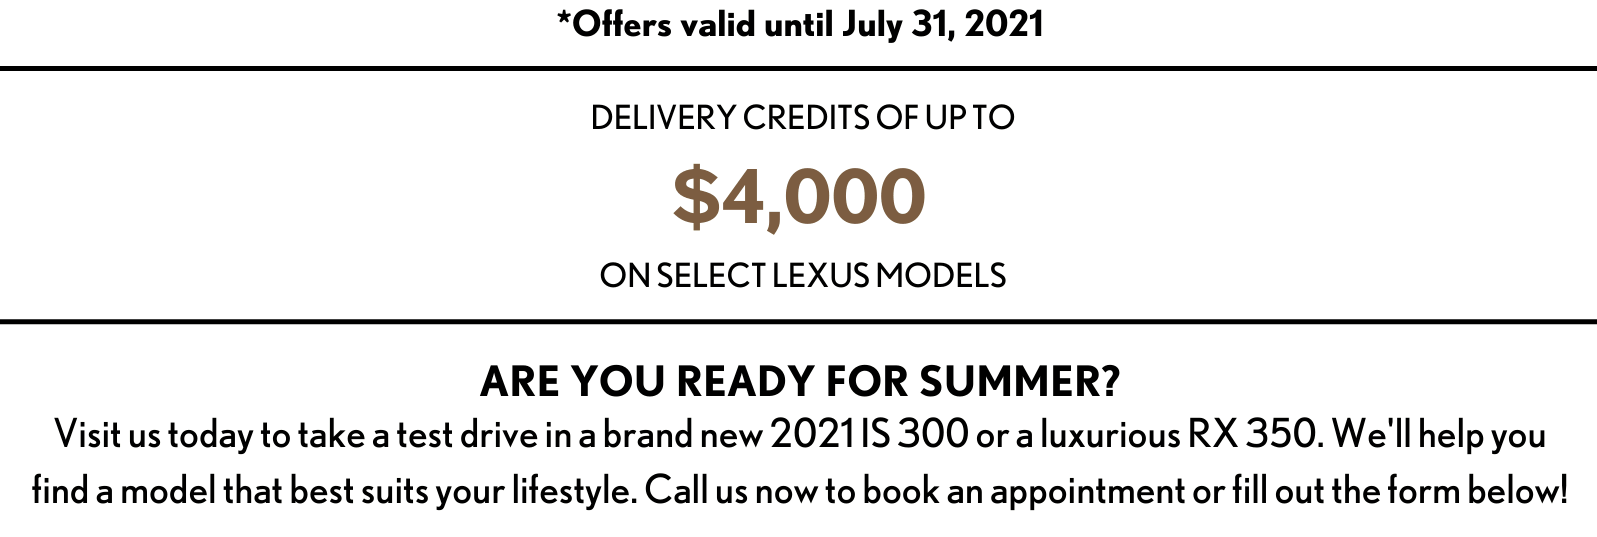 Offers Valid until July 31, 2021